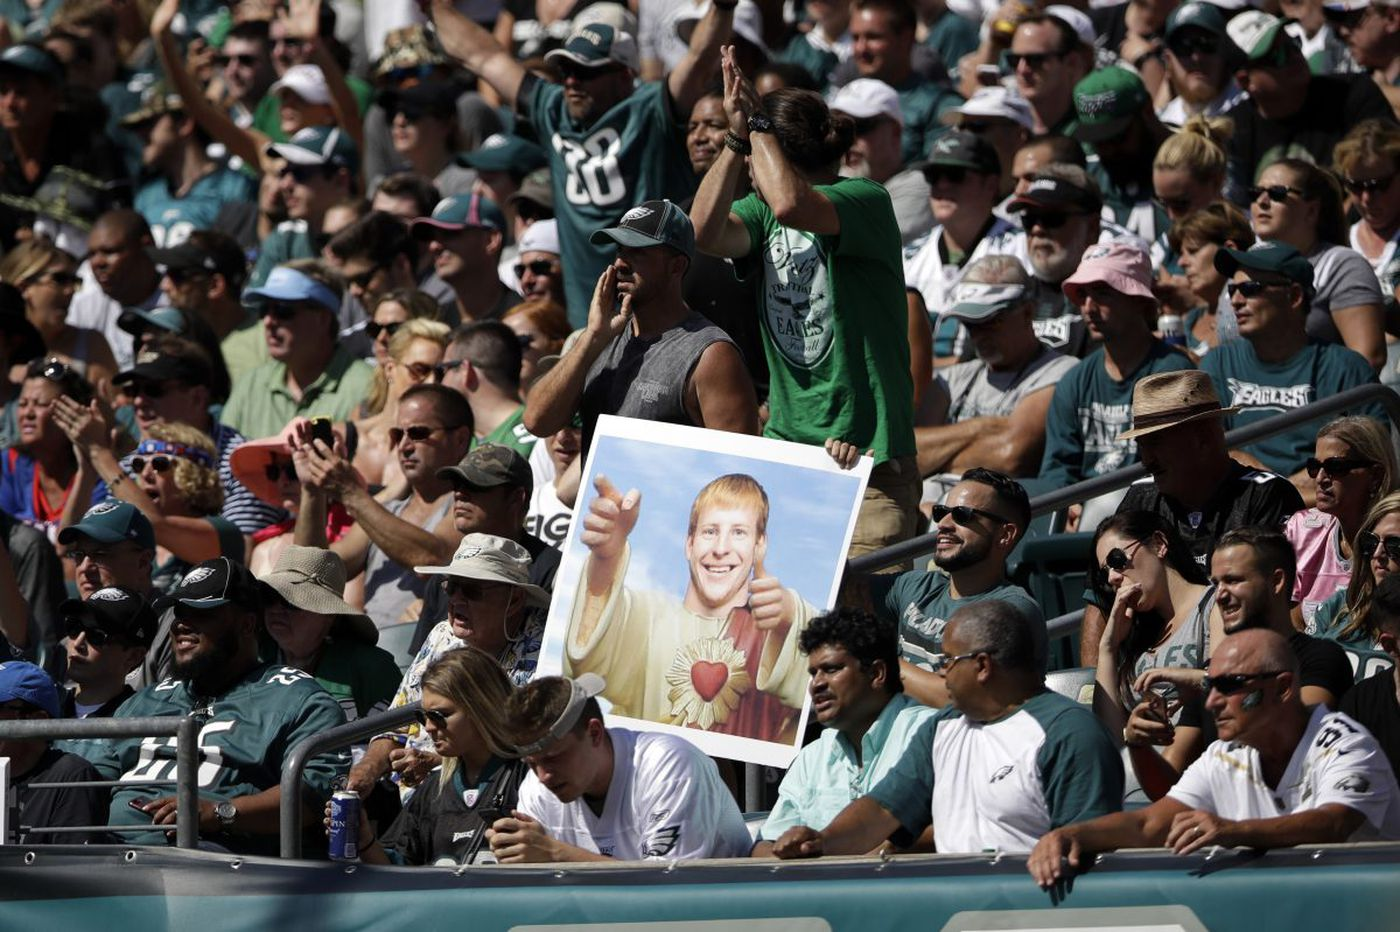 We cheer for this year's Eagles - and for ourselves